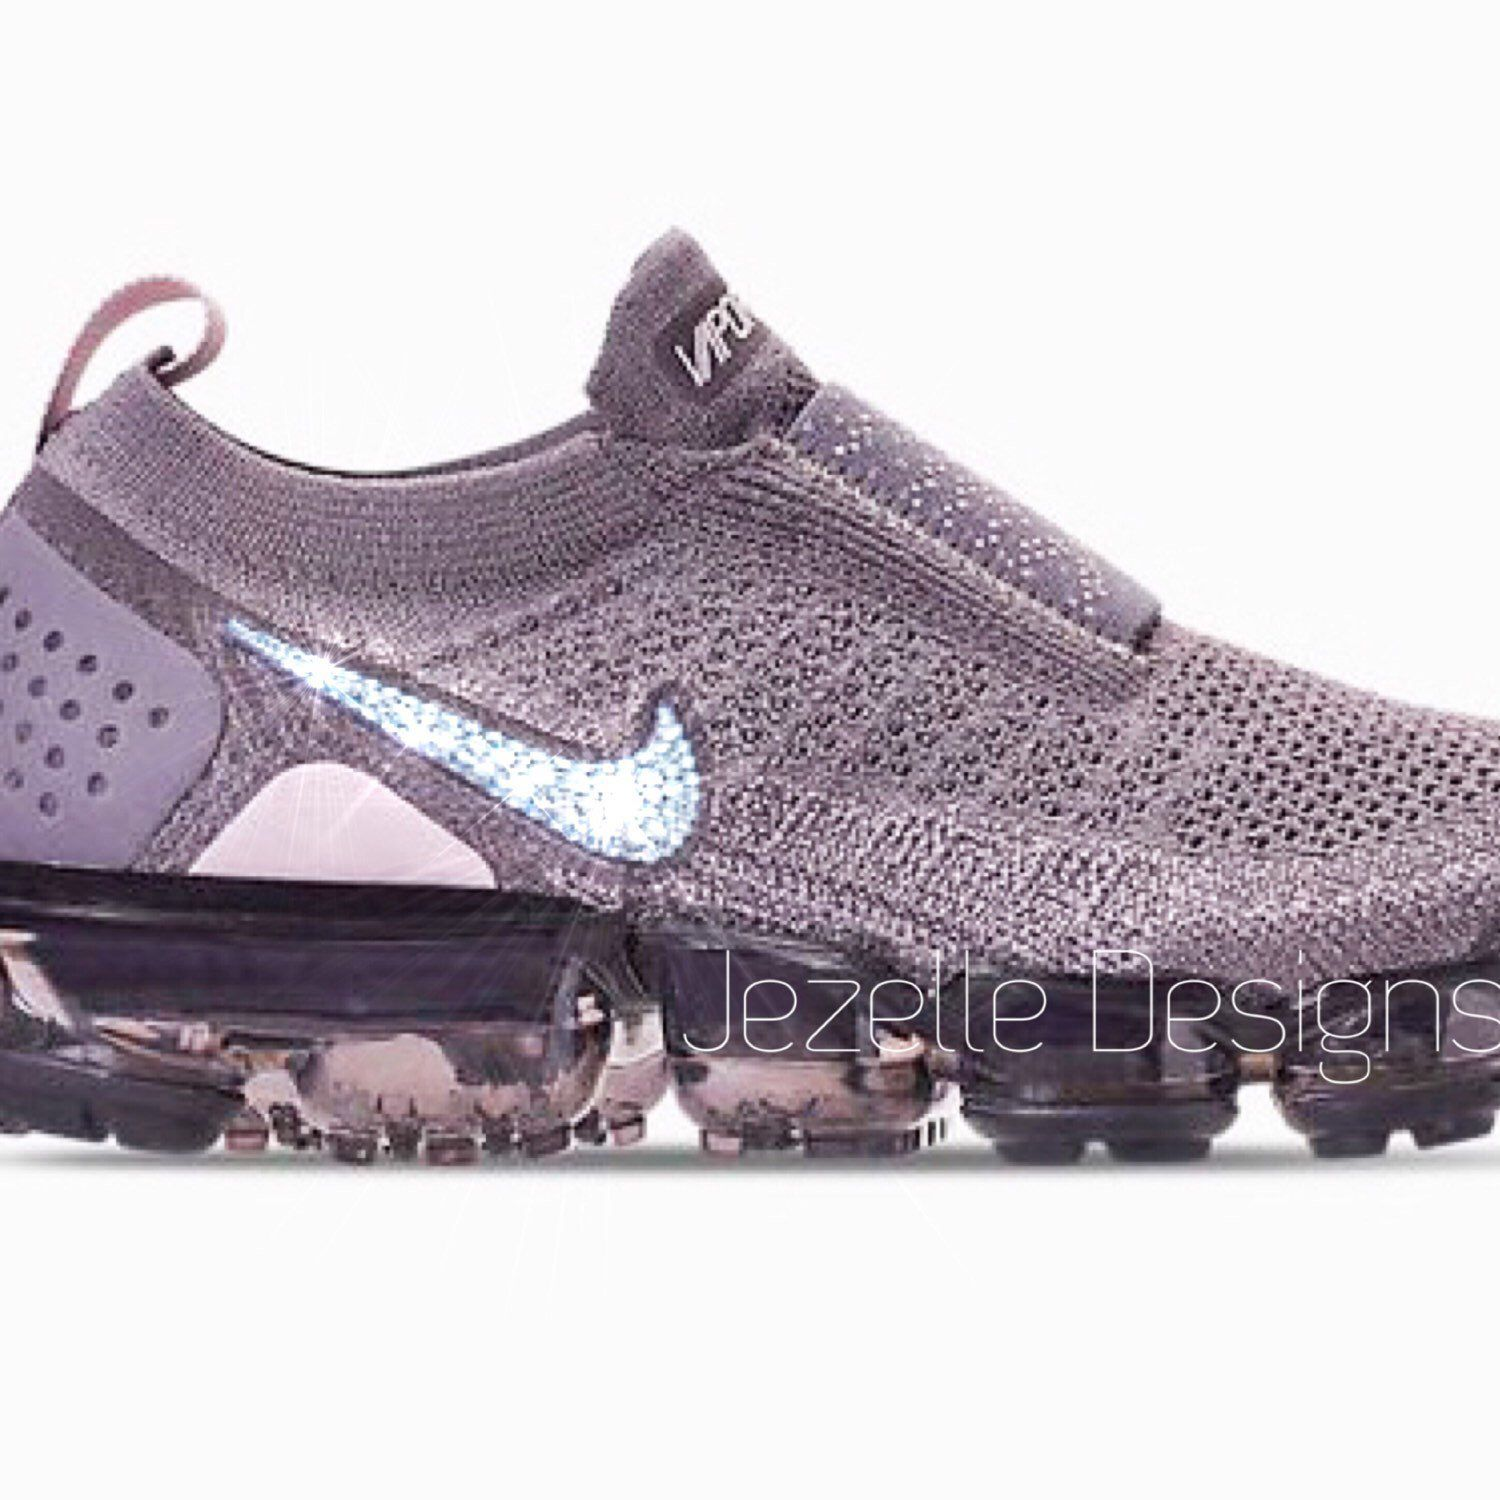 8281c6c496393 Sneaker CRUSH! 😍 New Swarovski Crystal Nike VaporMax MOC2 by Jezelle  Designs! 💎 Hurry! ⏰ Limited Release! ⏰